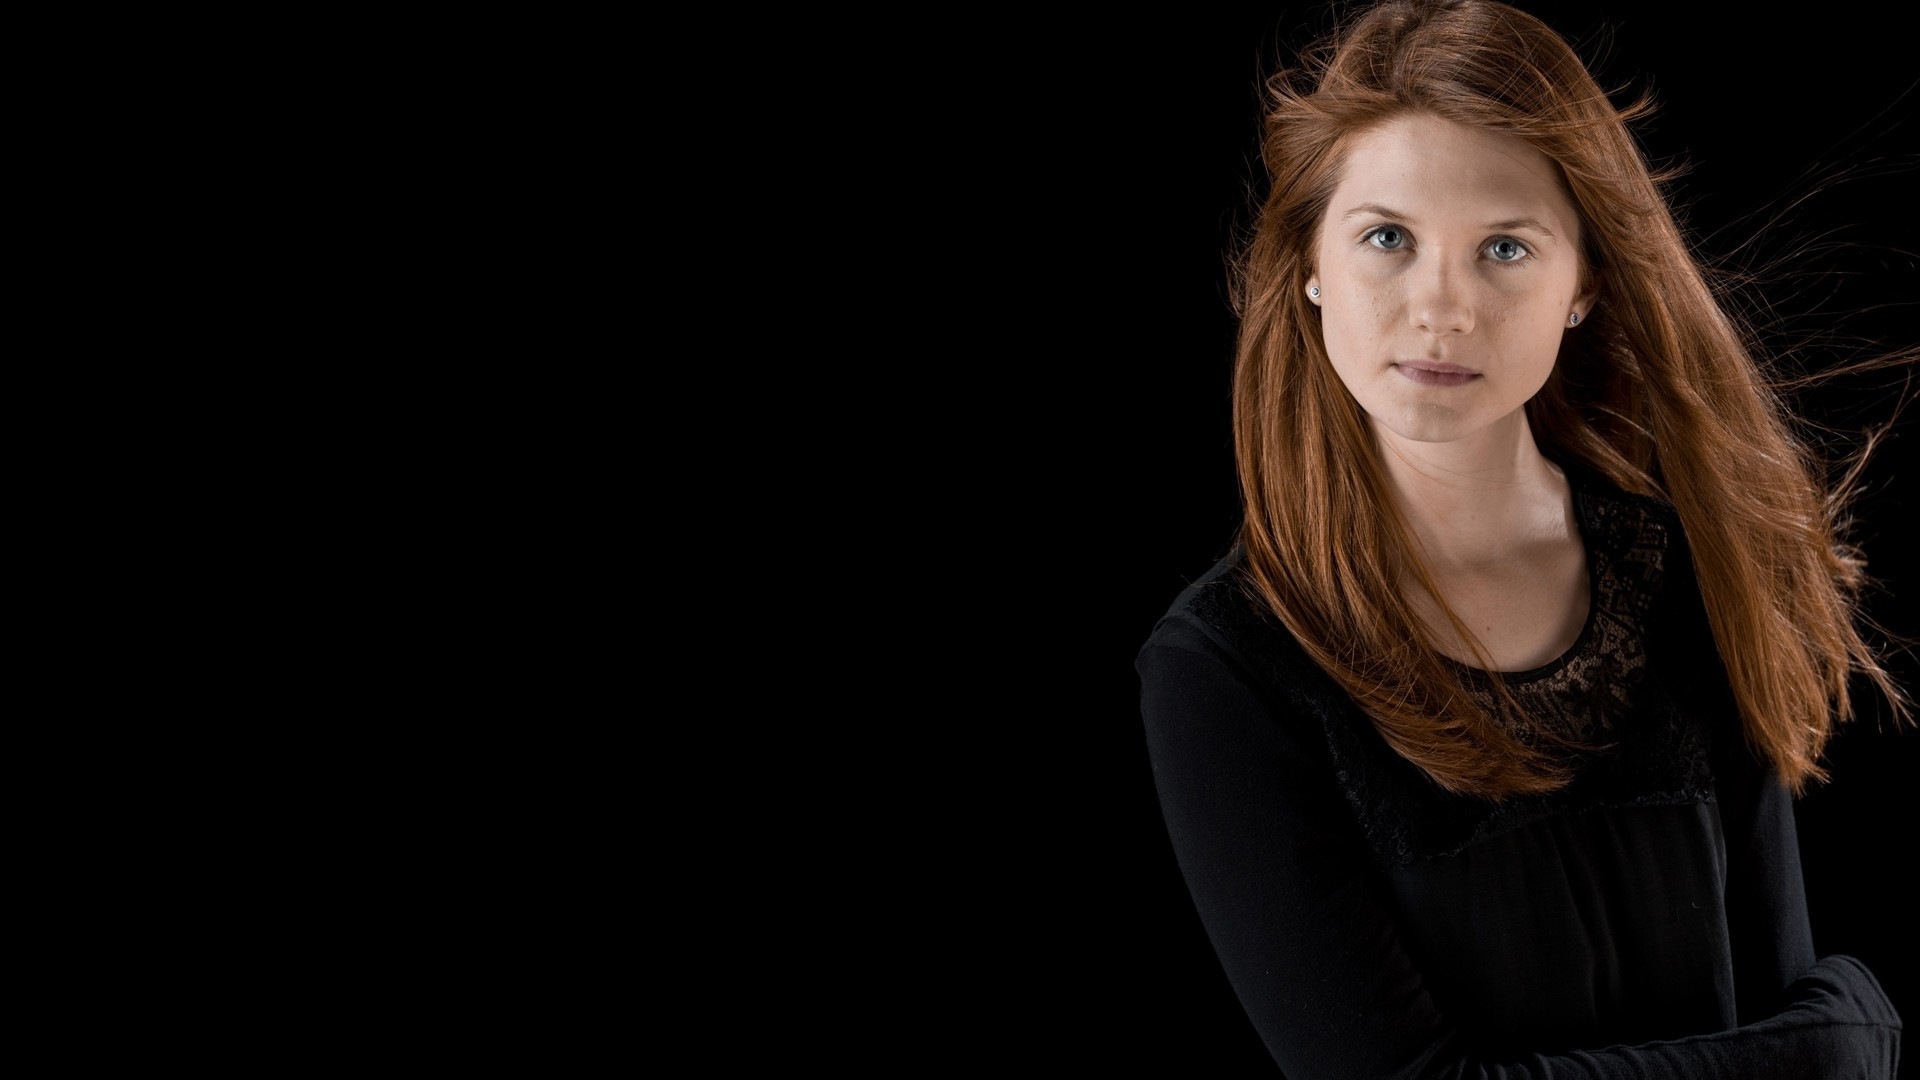 1920x1080 - Bonnie Wright Wallpapers 8